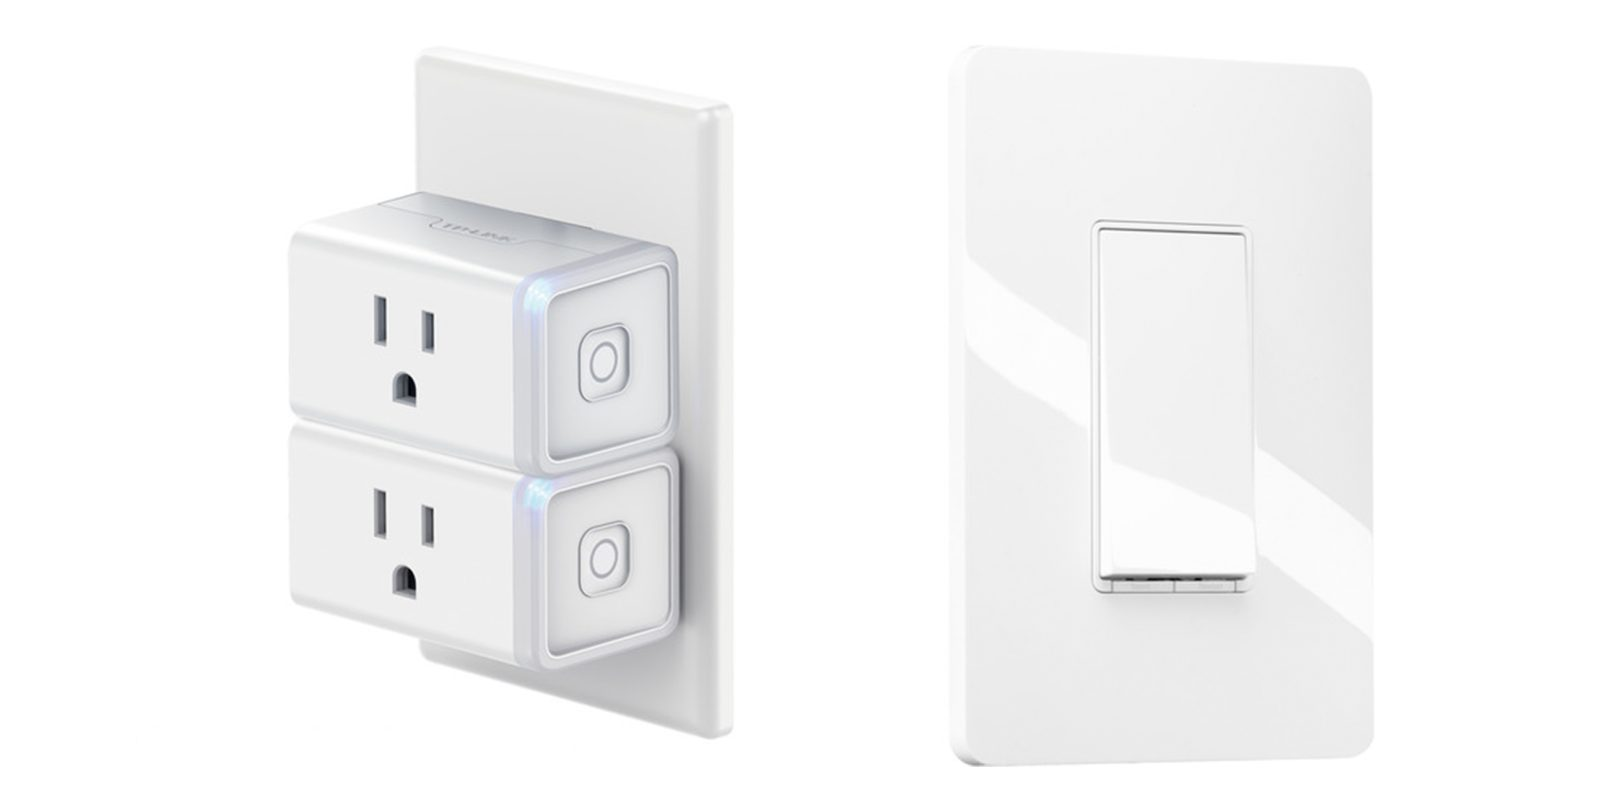 Your choice of two TP-Link Smart Plugs or Light Switches